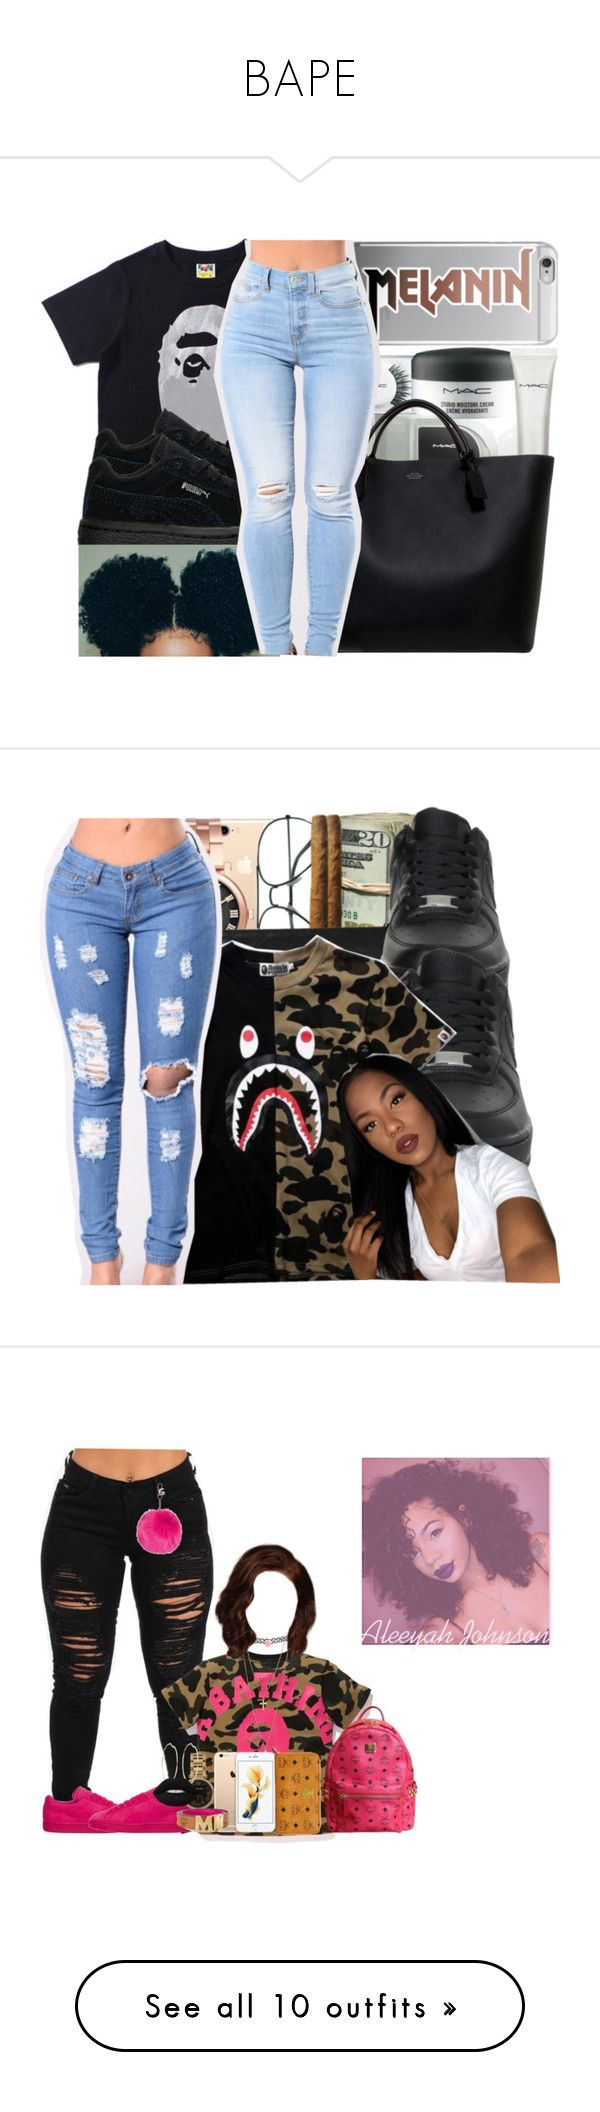 """""""BAPE"""" by uniquee-beauty ❤ liked on Polyvore featuring Smythson, Michael Kors, Chanel, NIKE, A BATHING APE, MICHAEL Michael Kors, Accessorize, MCM, River Island and Topshop"""